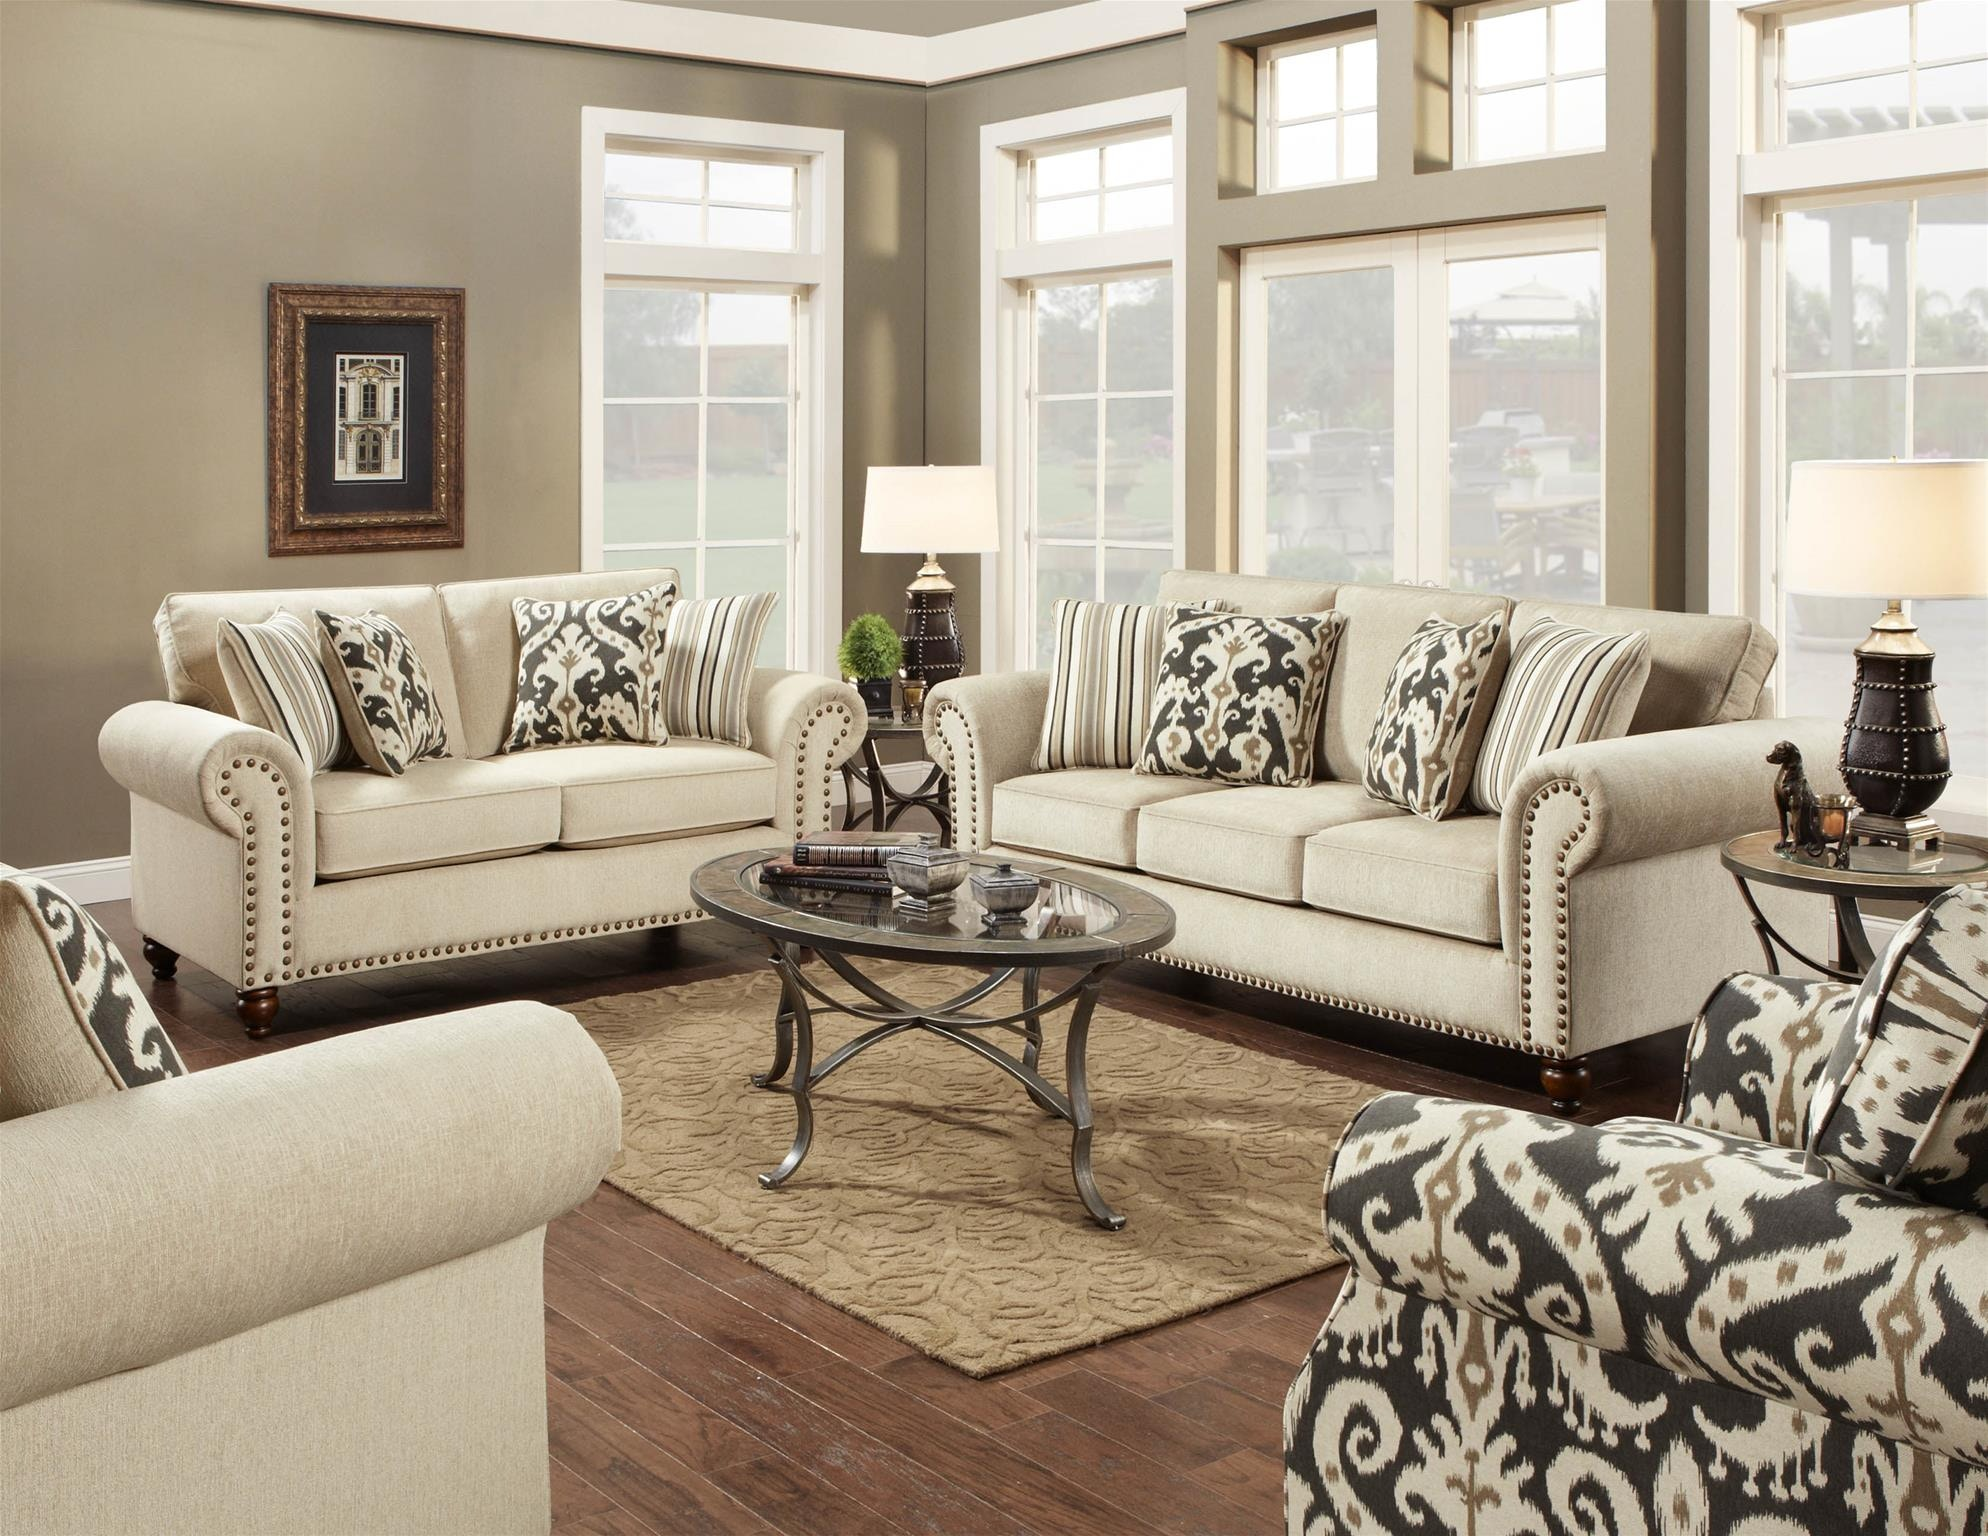 Charmant Fusion Living Room Chair 1/2 3112Fairly Sand At B.F. Myers Furniture